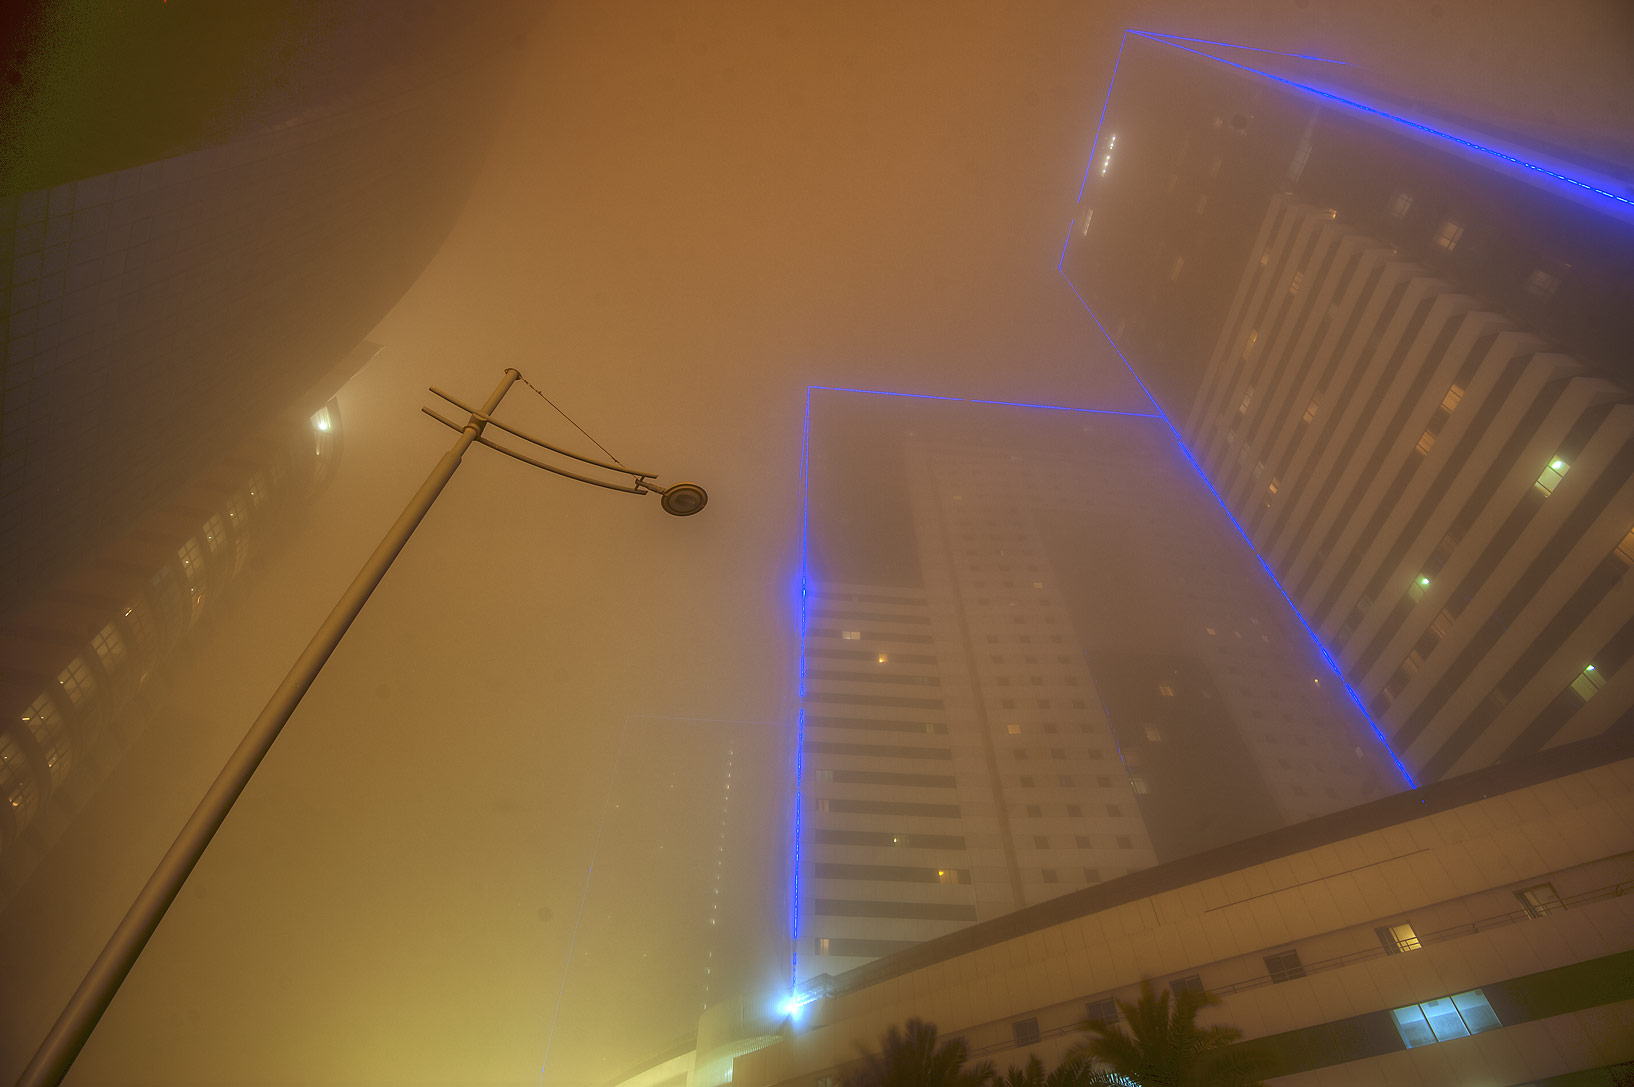 Towers No. 1 and 3 of Ezdan Hotel and Suites in West Bay during dust storm. Doha, Qatar